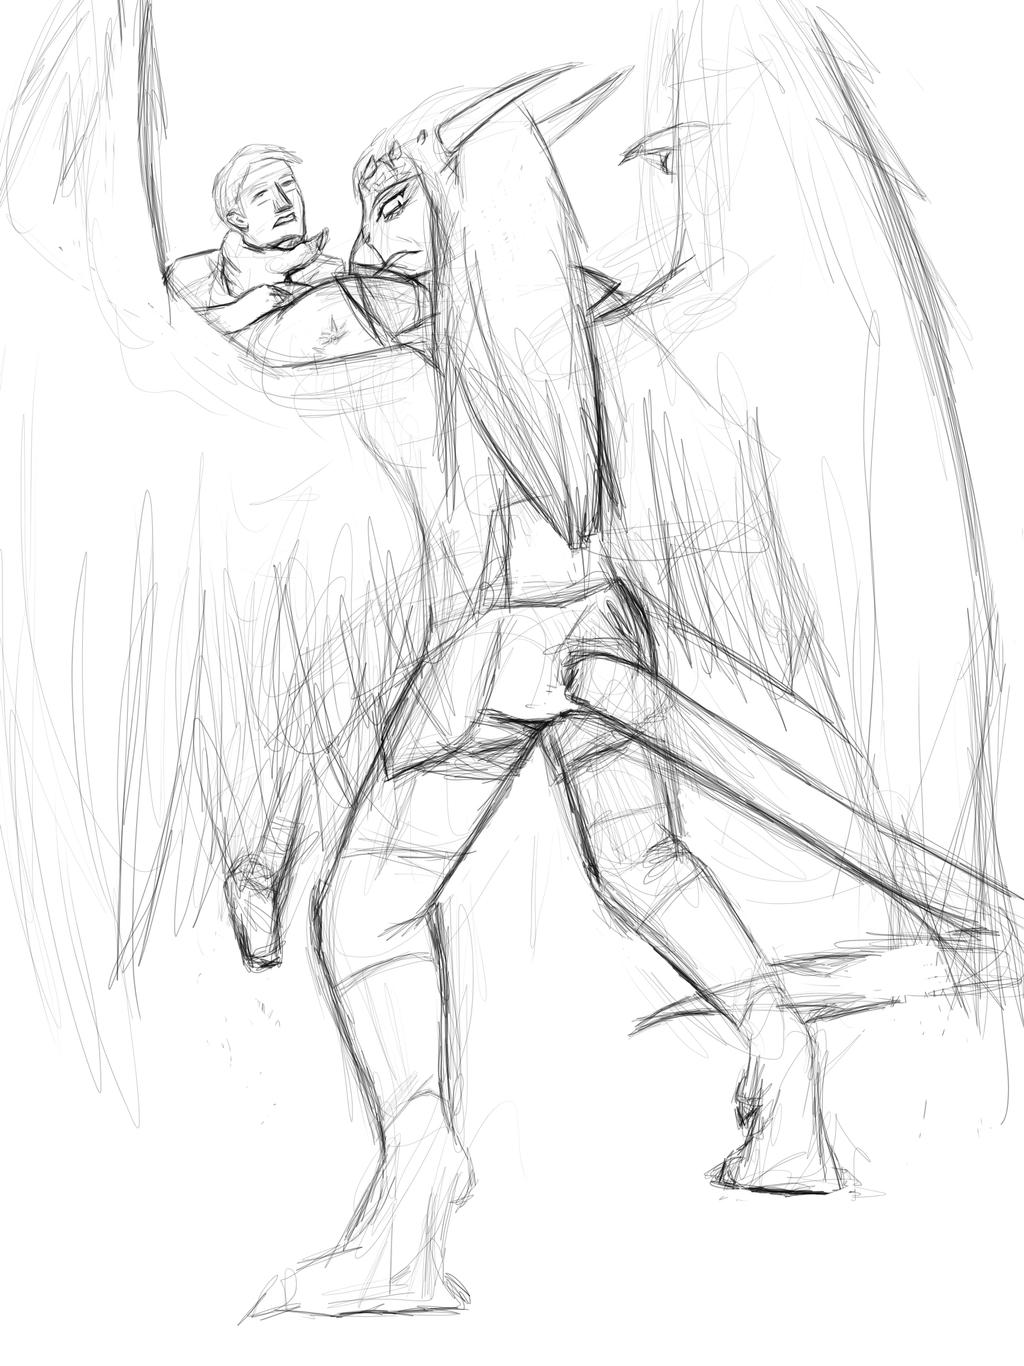 New sketch started by Seferia